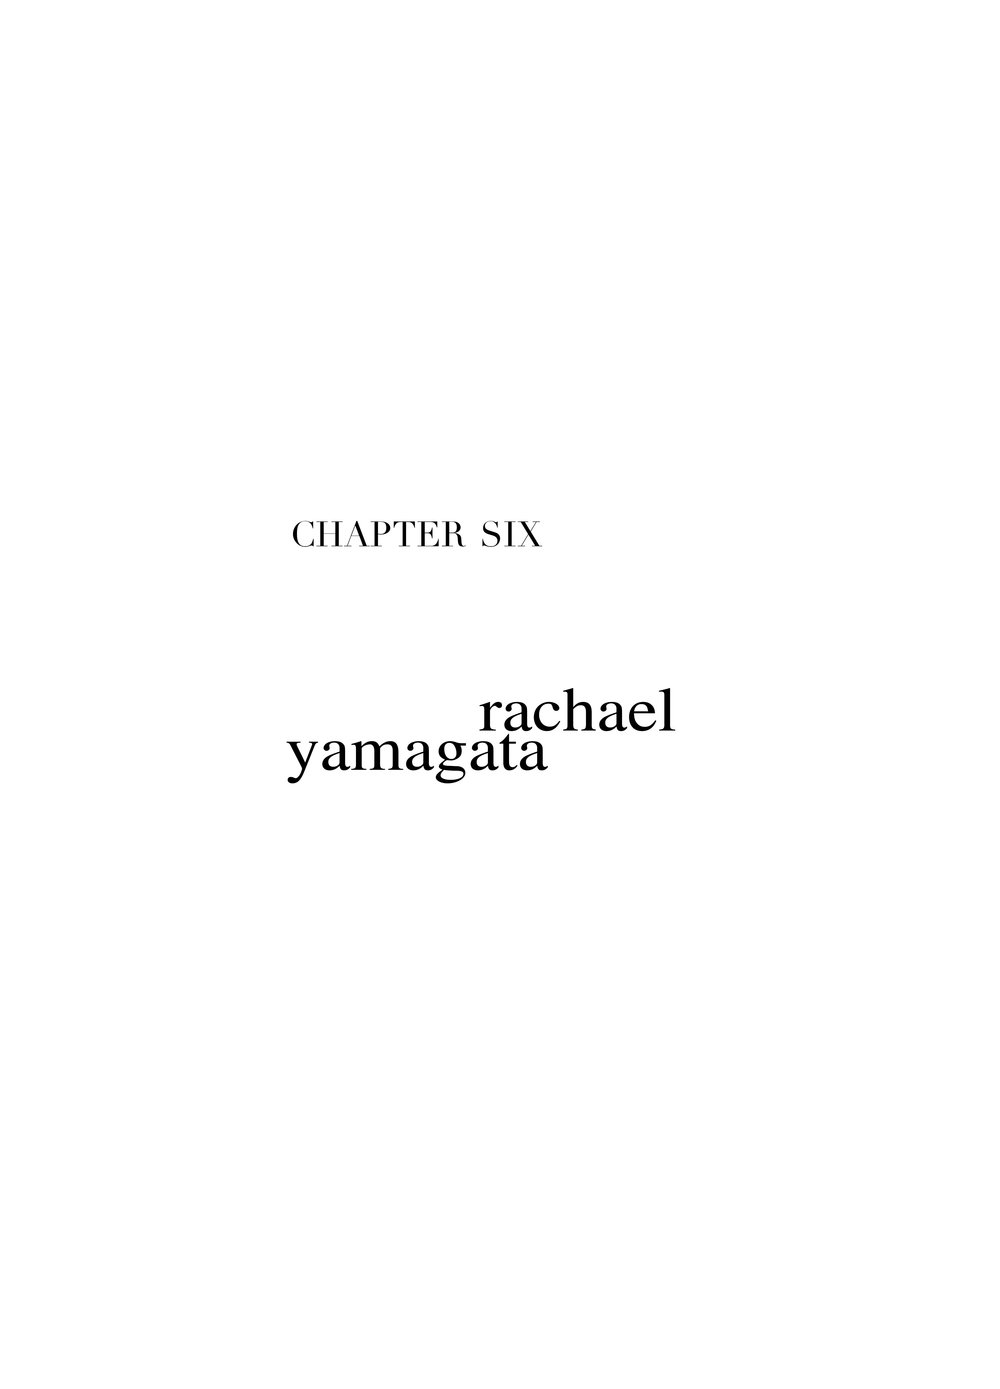 chapter06rachaelyamagata.jpg